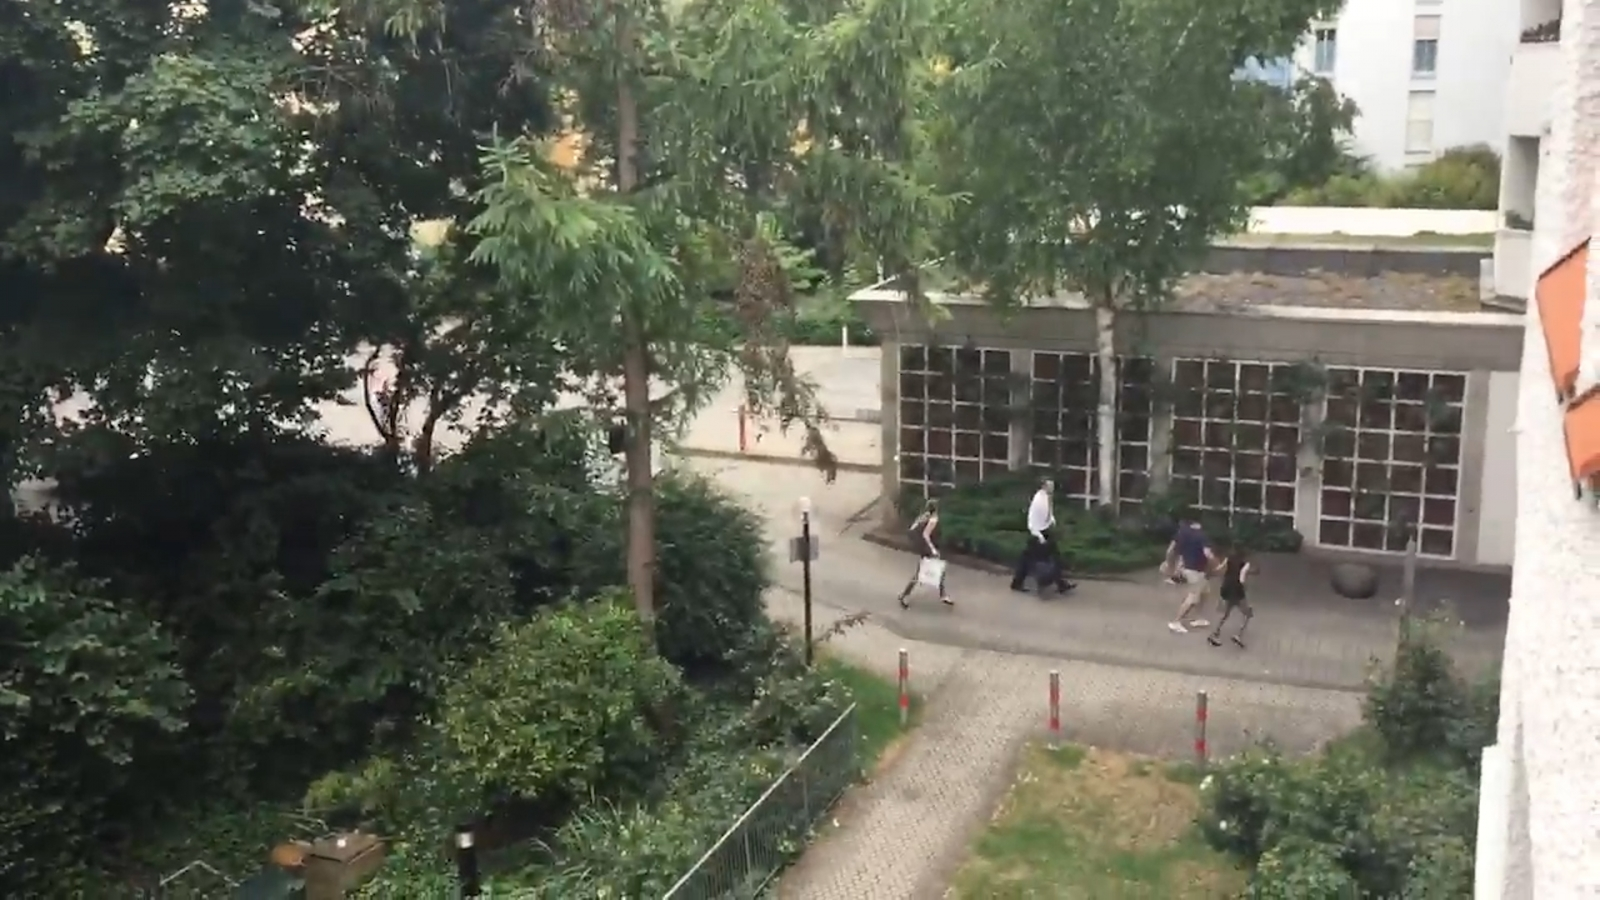 Munich: Video shows people fleeing from Olympia shopping centre